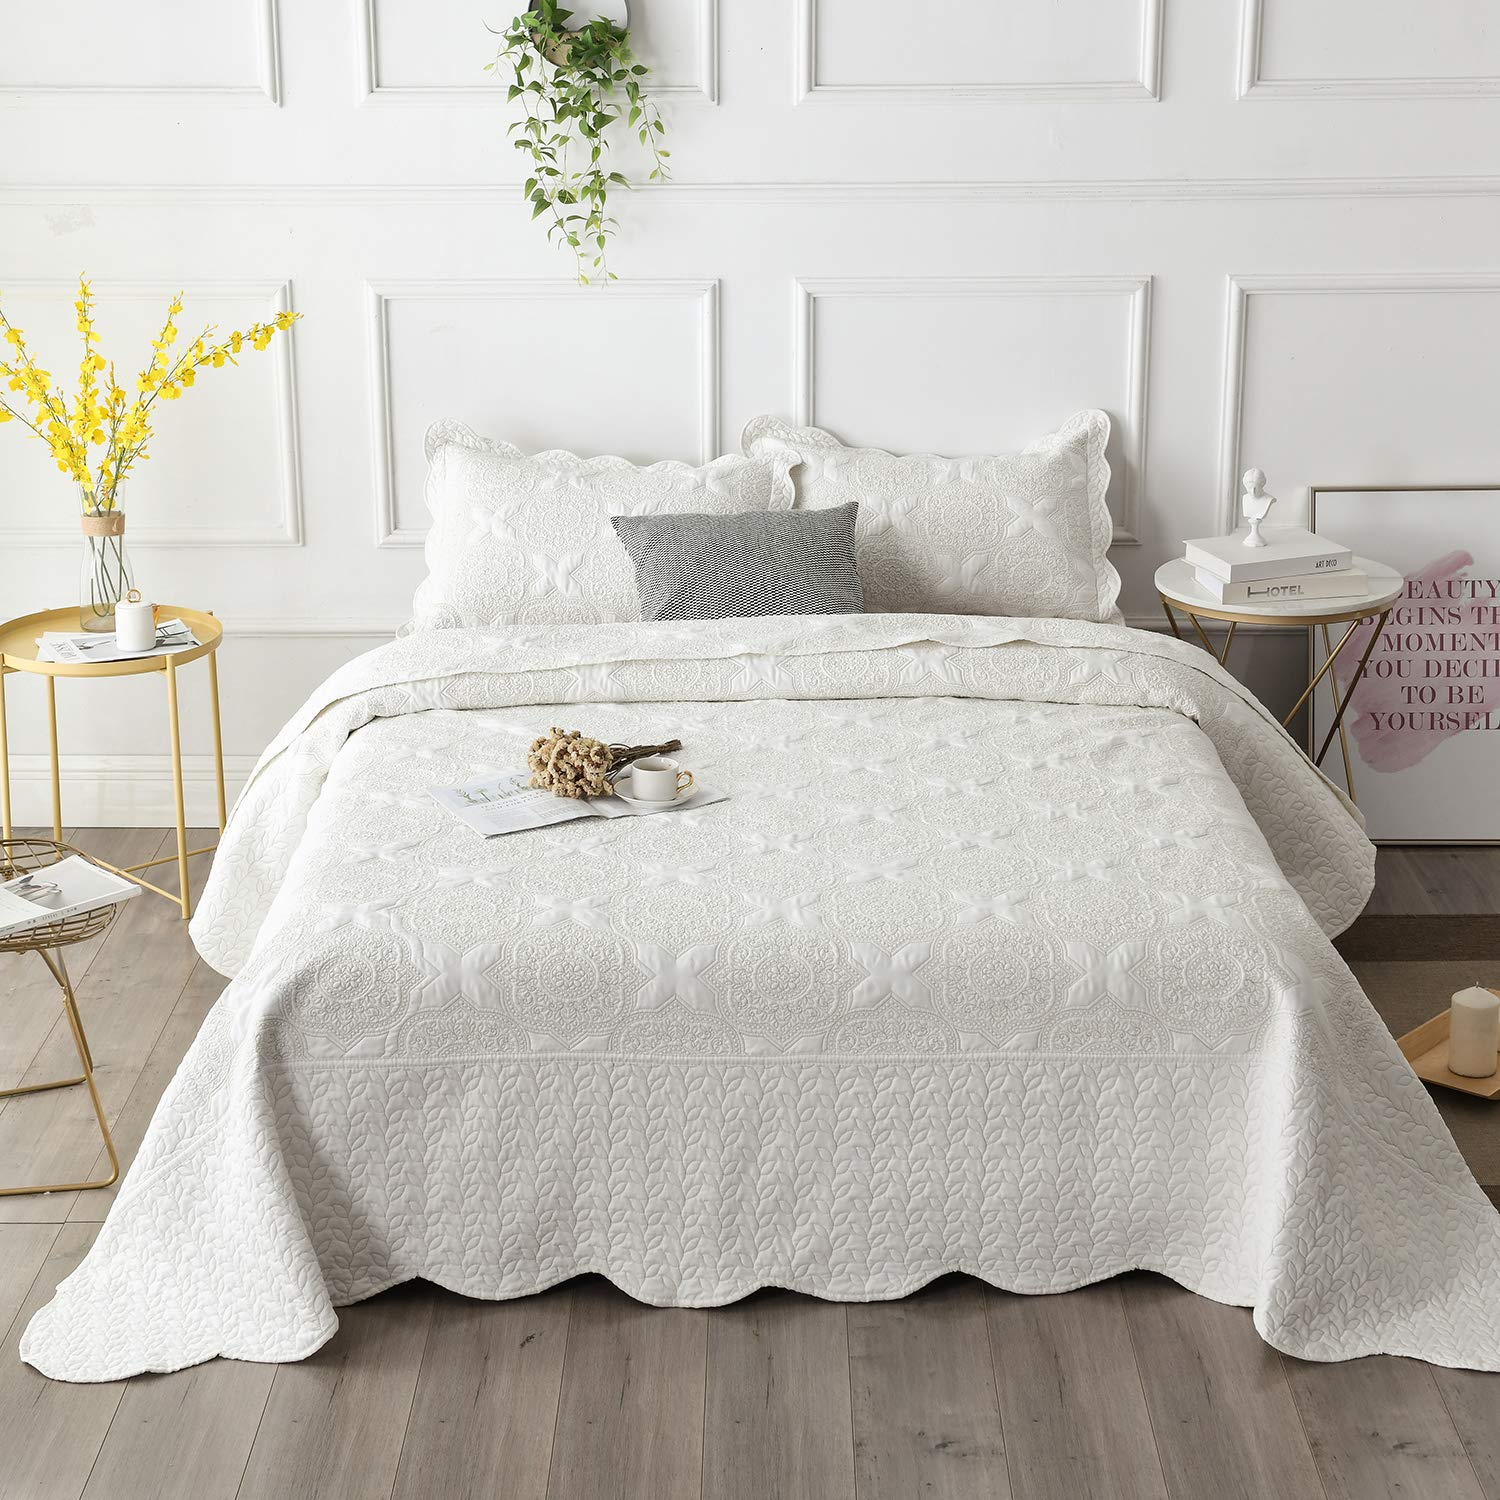 Brandream Farmhouse Bedding Cream White Quilt Set Queen Size Embroidery Bedspread Coverlet Set Vintage Bedding Collection